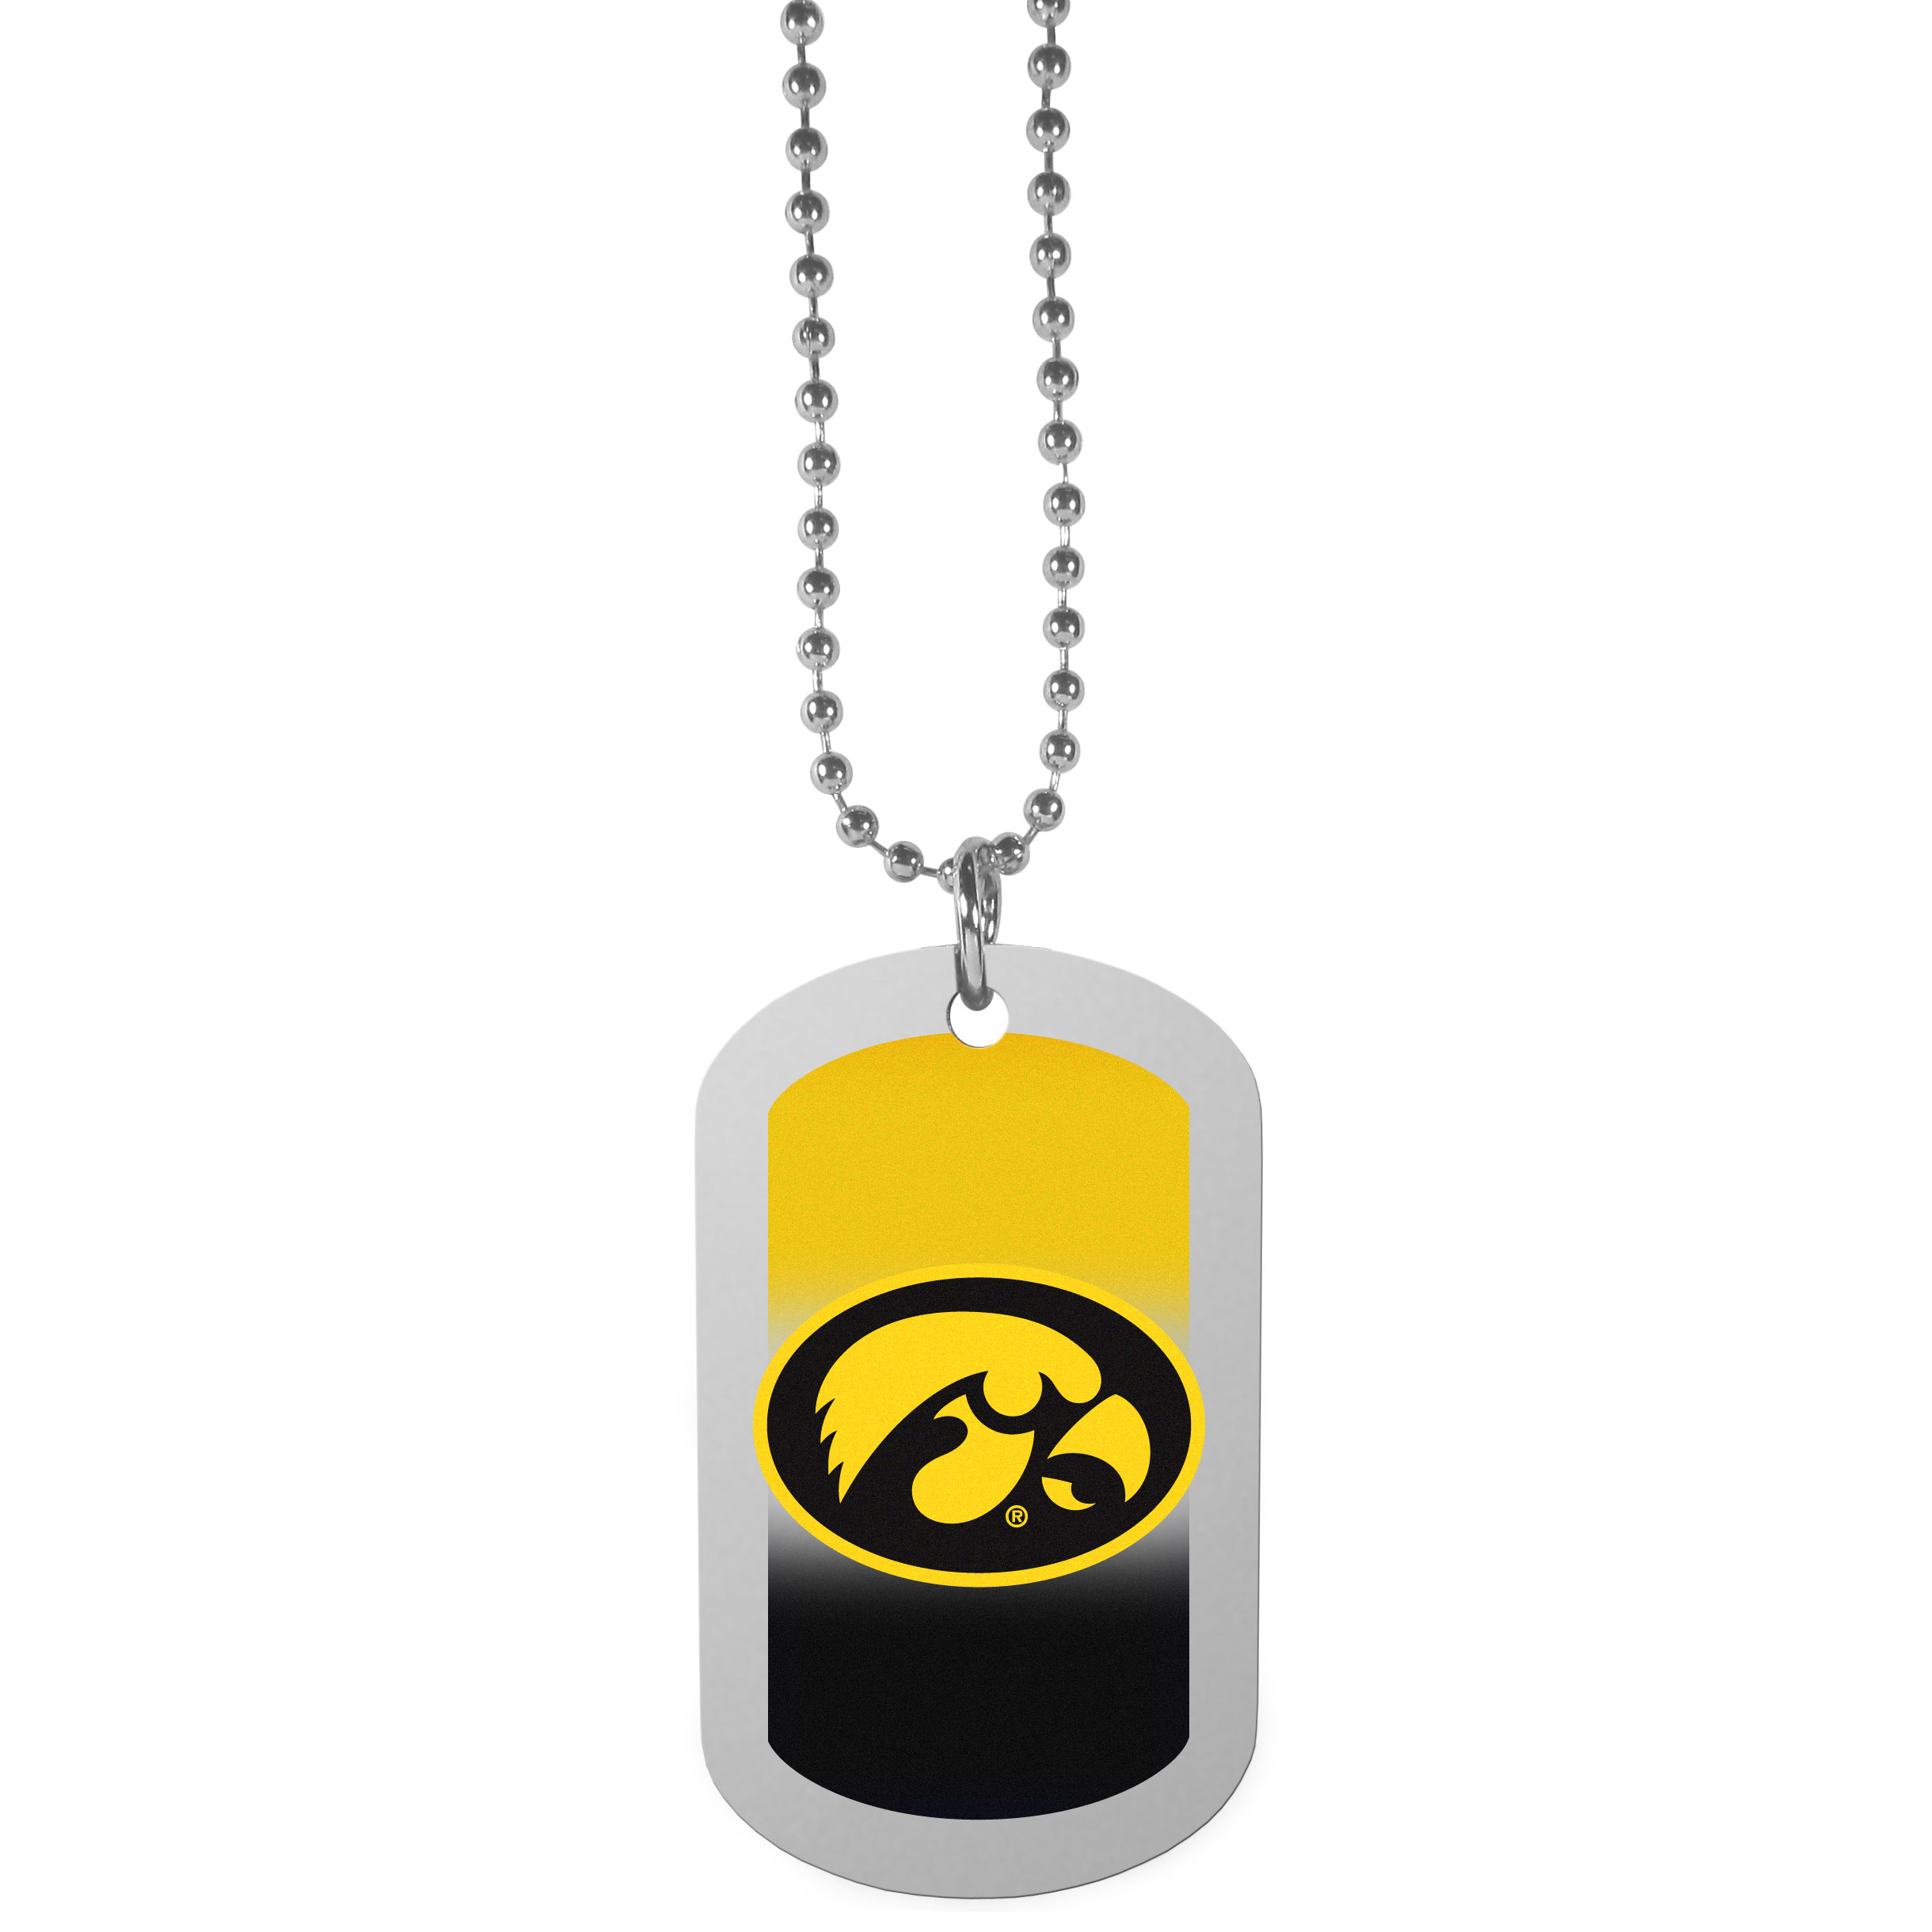 Iowa Hawkeyes Team Tag Necklace - Dog tag necklaces are a fashion statement that is here to stay. The sporty version of the classic tag features a gradient print in team colors featuring a full color team logo over a high polish tag to create a bold and sporty look. The tag comes on a 26 inch ball chain with a ball and joint clasp. Any Iowa Hawkeyes would be proud to wear this attractive fashion accessory.